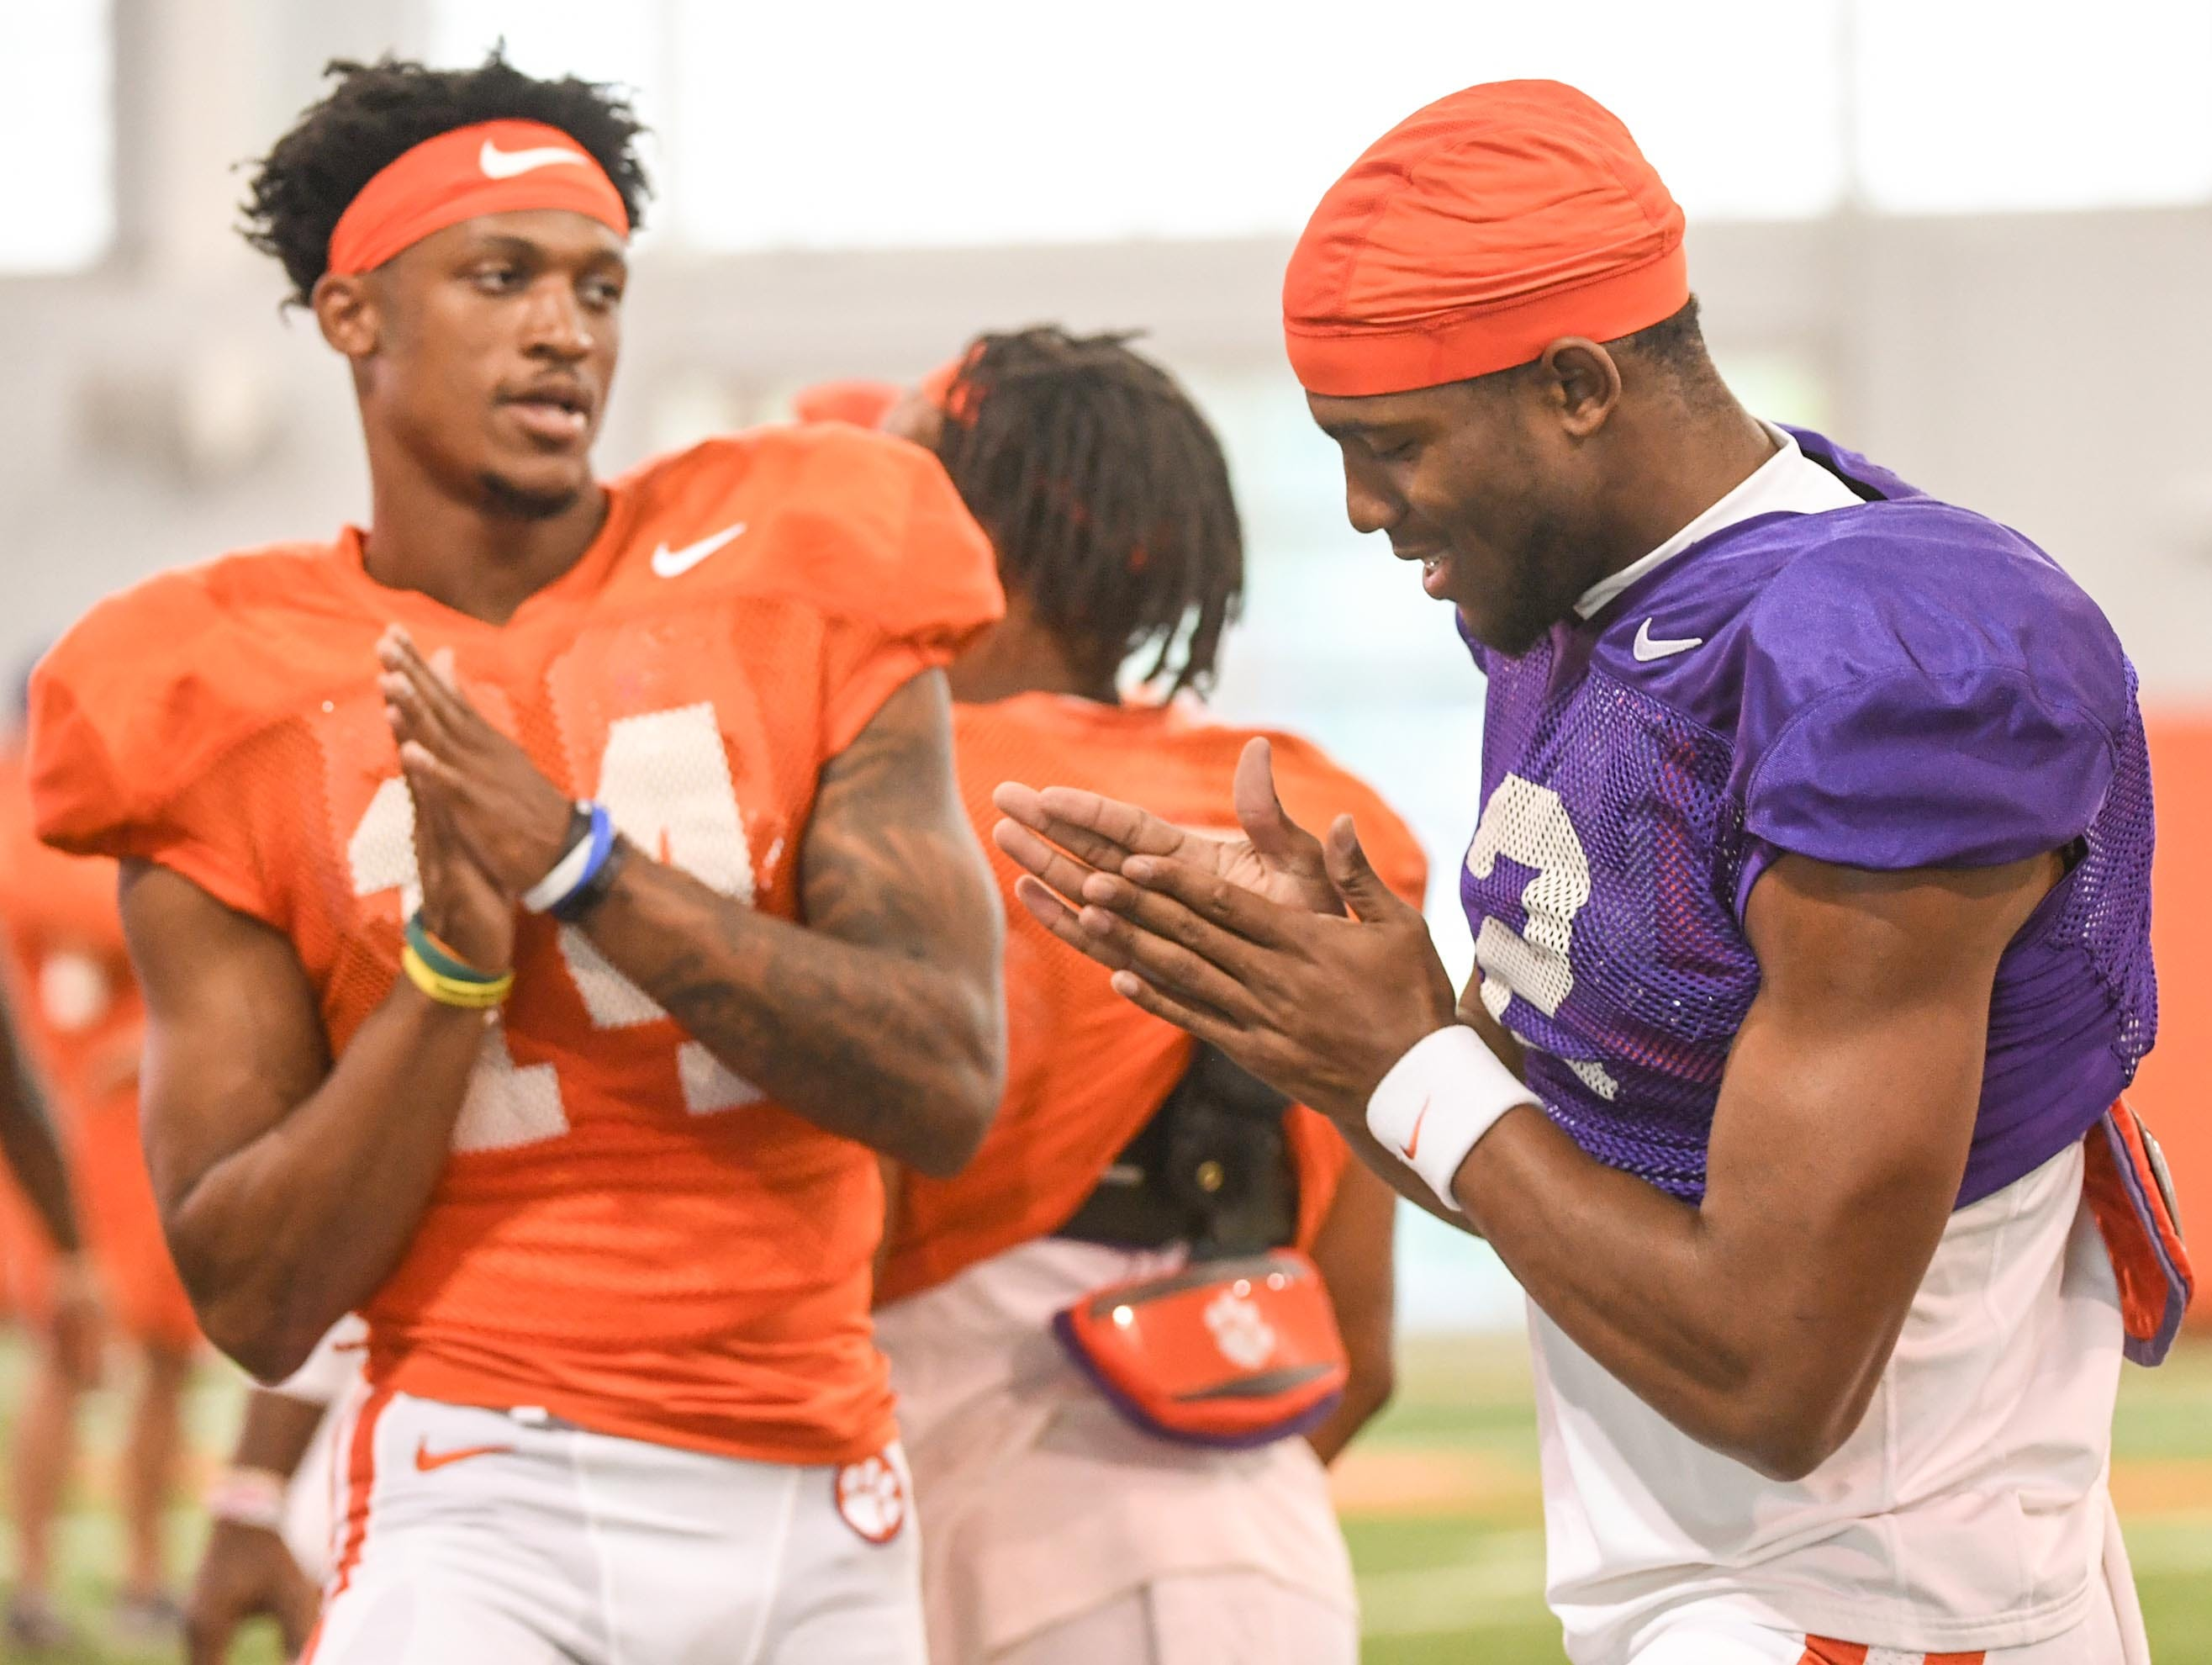 Clemson wide receiver Diondre Overton (14), left, and quarterback Kelly Bryant (2) greet each other during fall practice in Clemson on Wednesday.